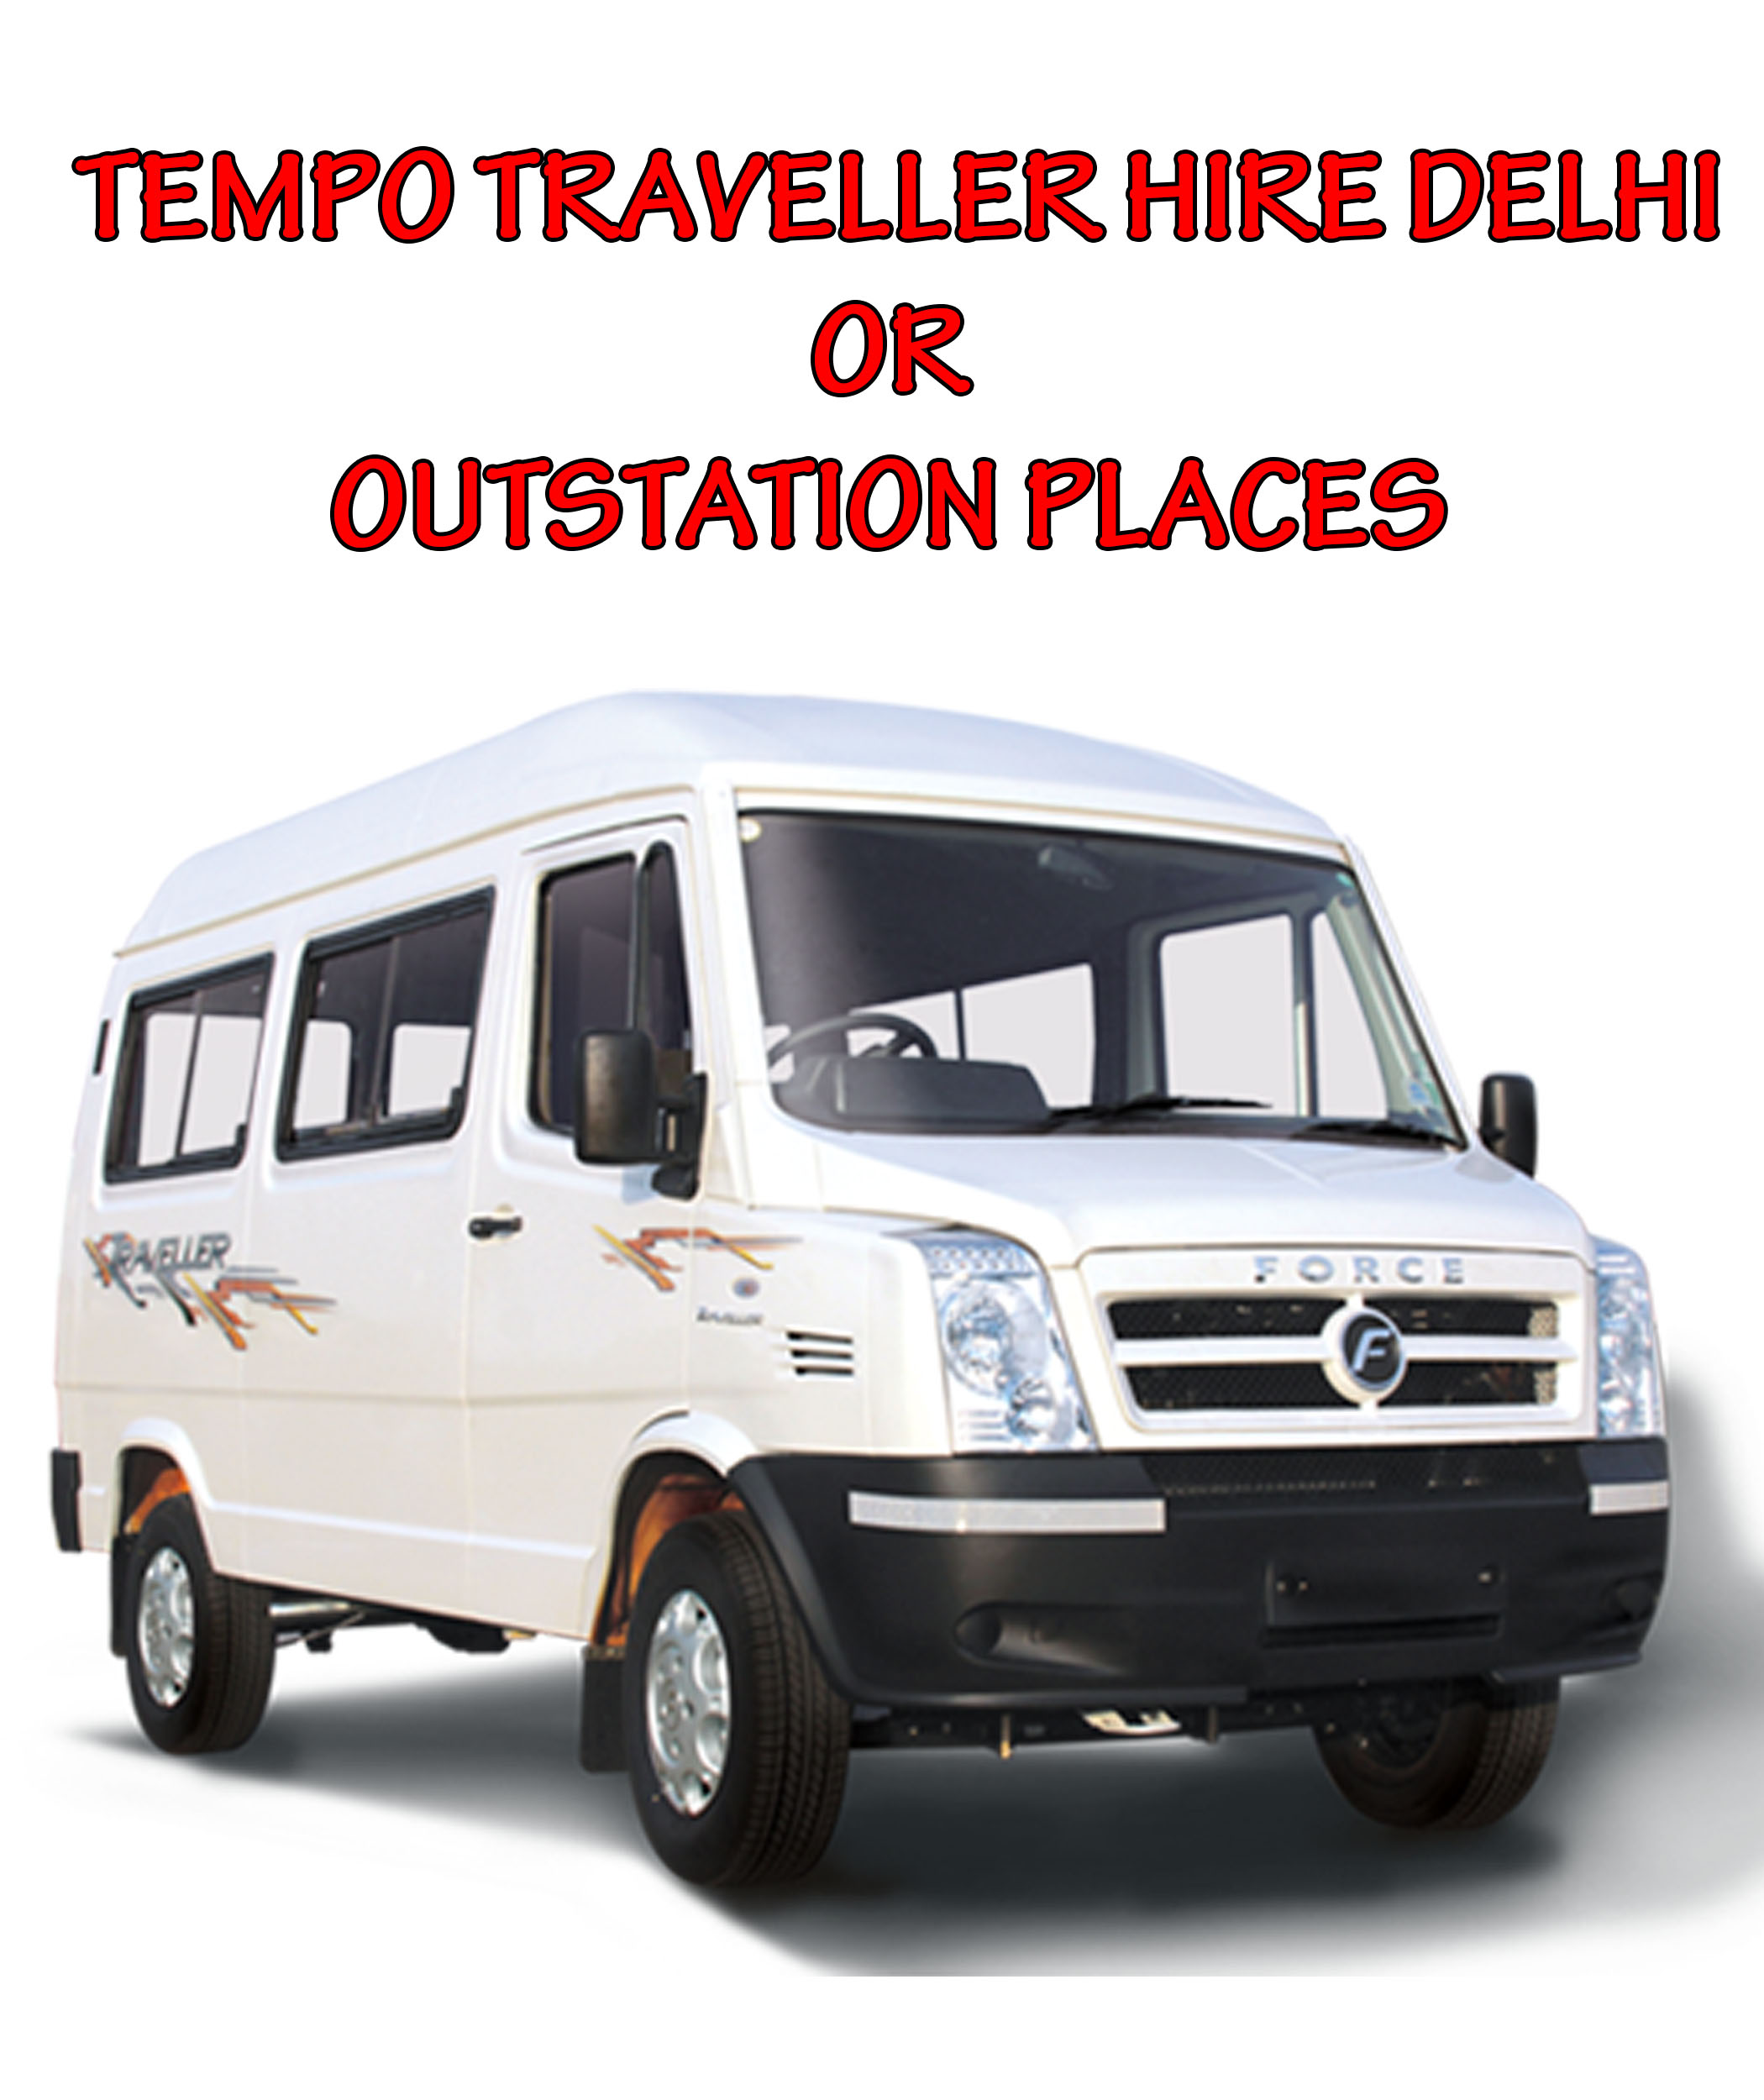 15 Seater Tempo Traveller Hire Delhi to Other States